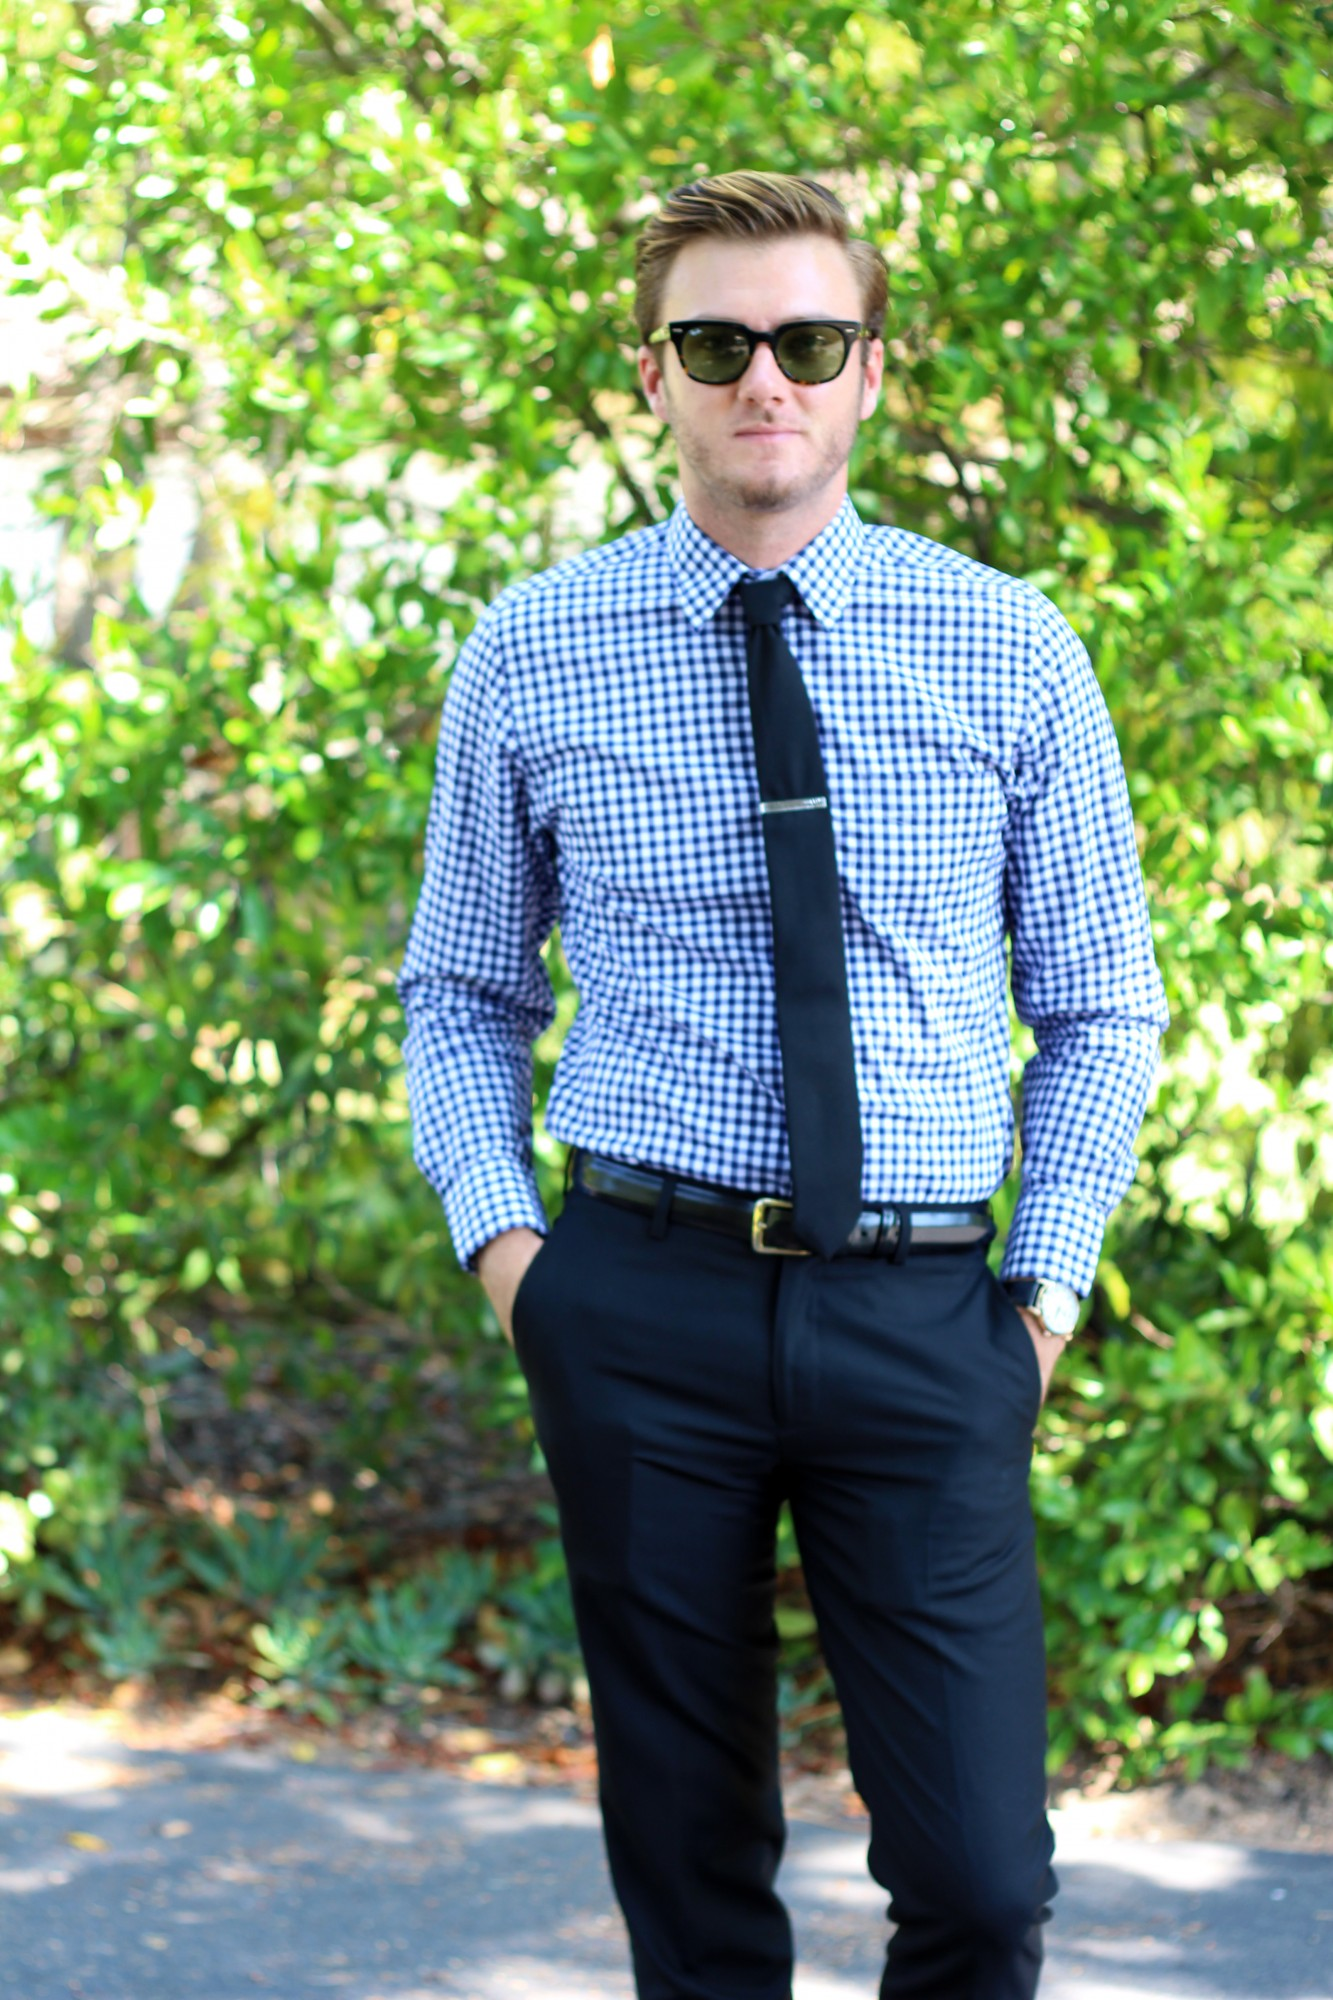 Gingham shirt and Tie 1